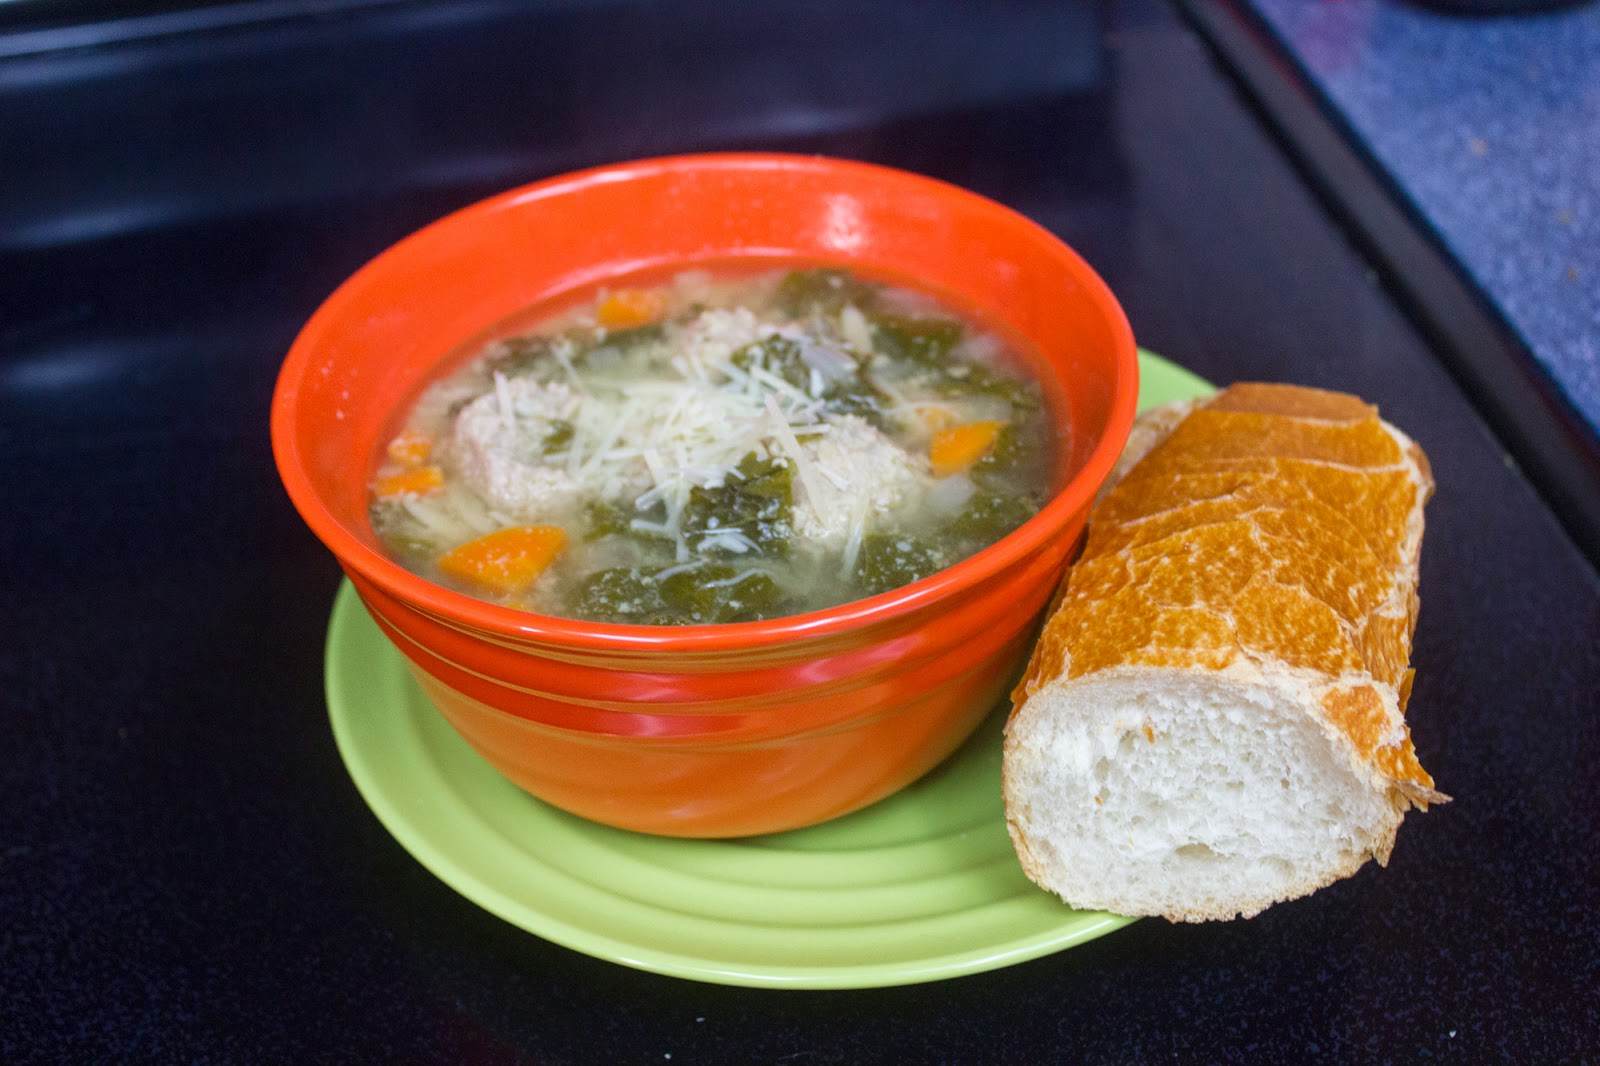 Crafts Cakes And Cats Crock Pot Italian Wedding Soup With Turkey Meatballs